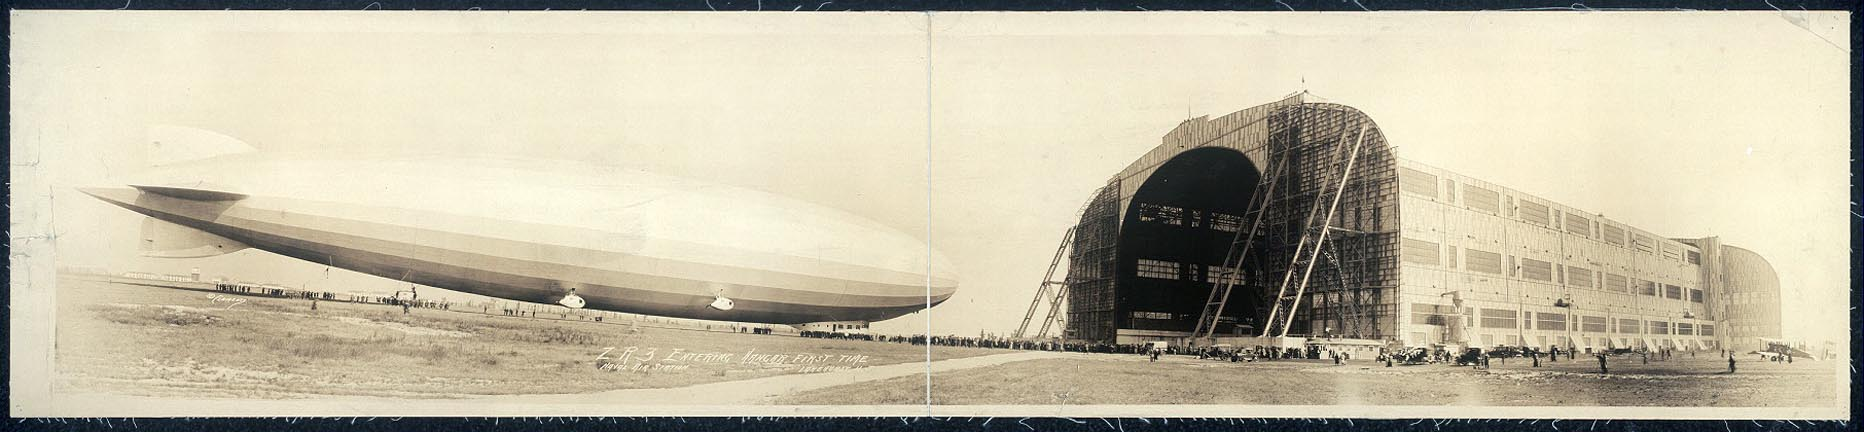 fp1603 (airship zr-3 entering hangar)